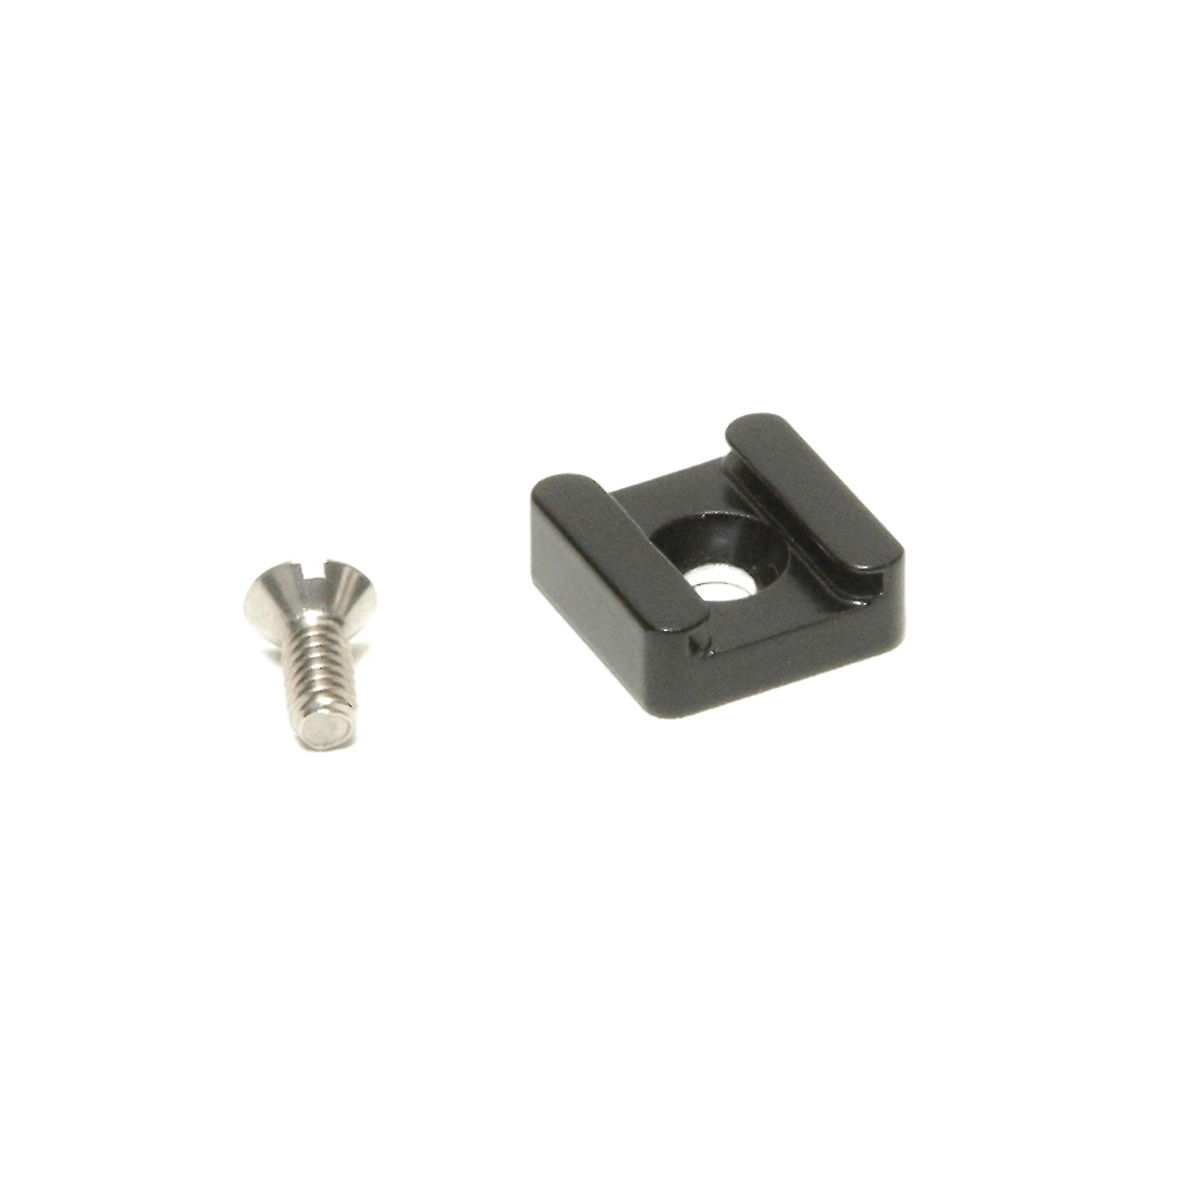 Lumedyne Asho Cold Shoe Adapter With 14 20 Threaded Screw